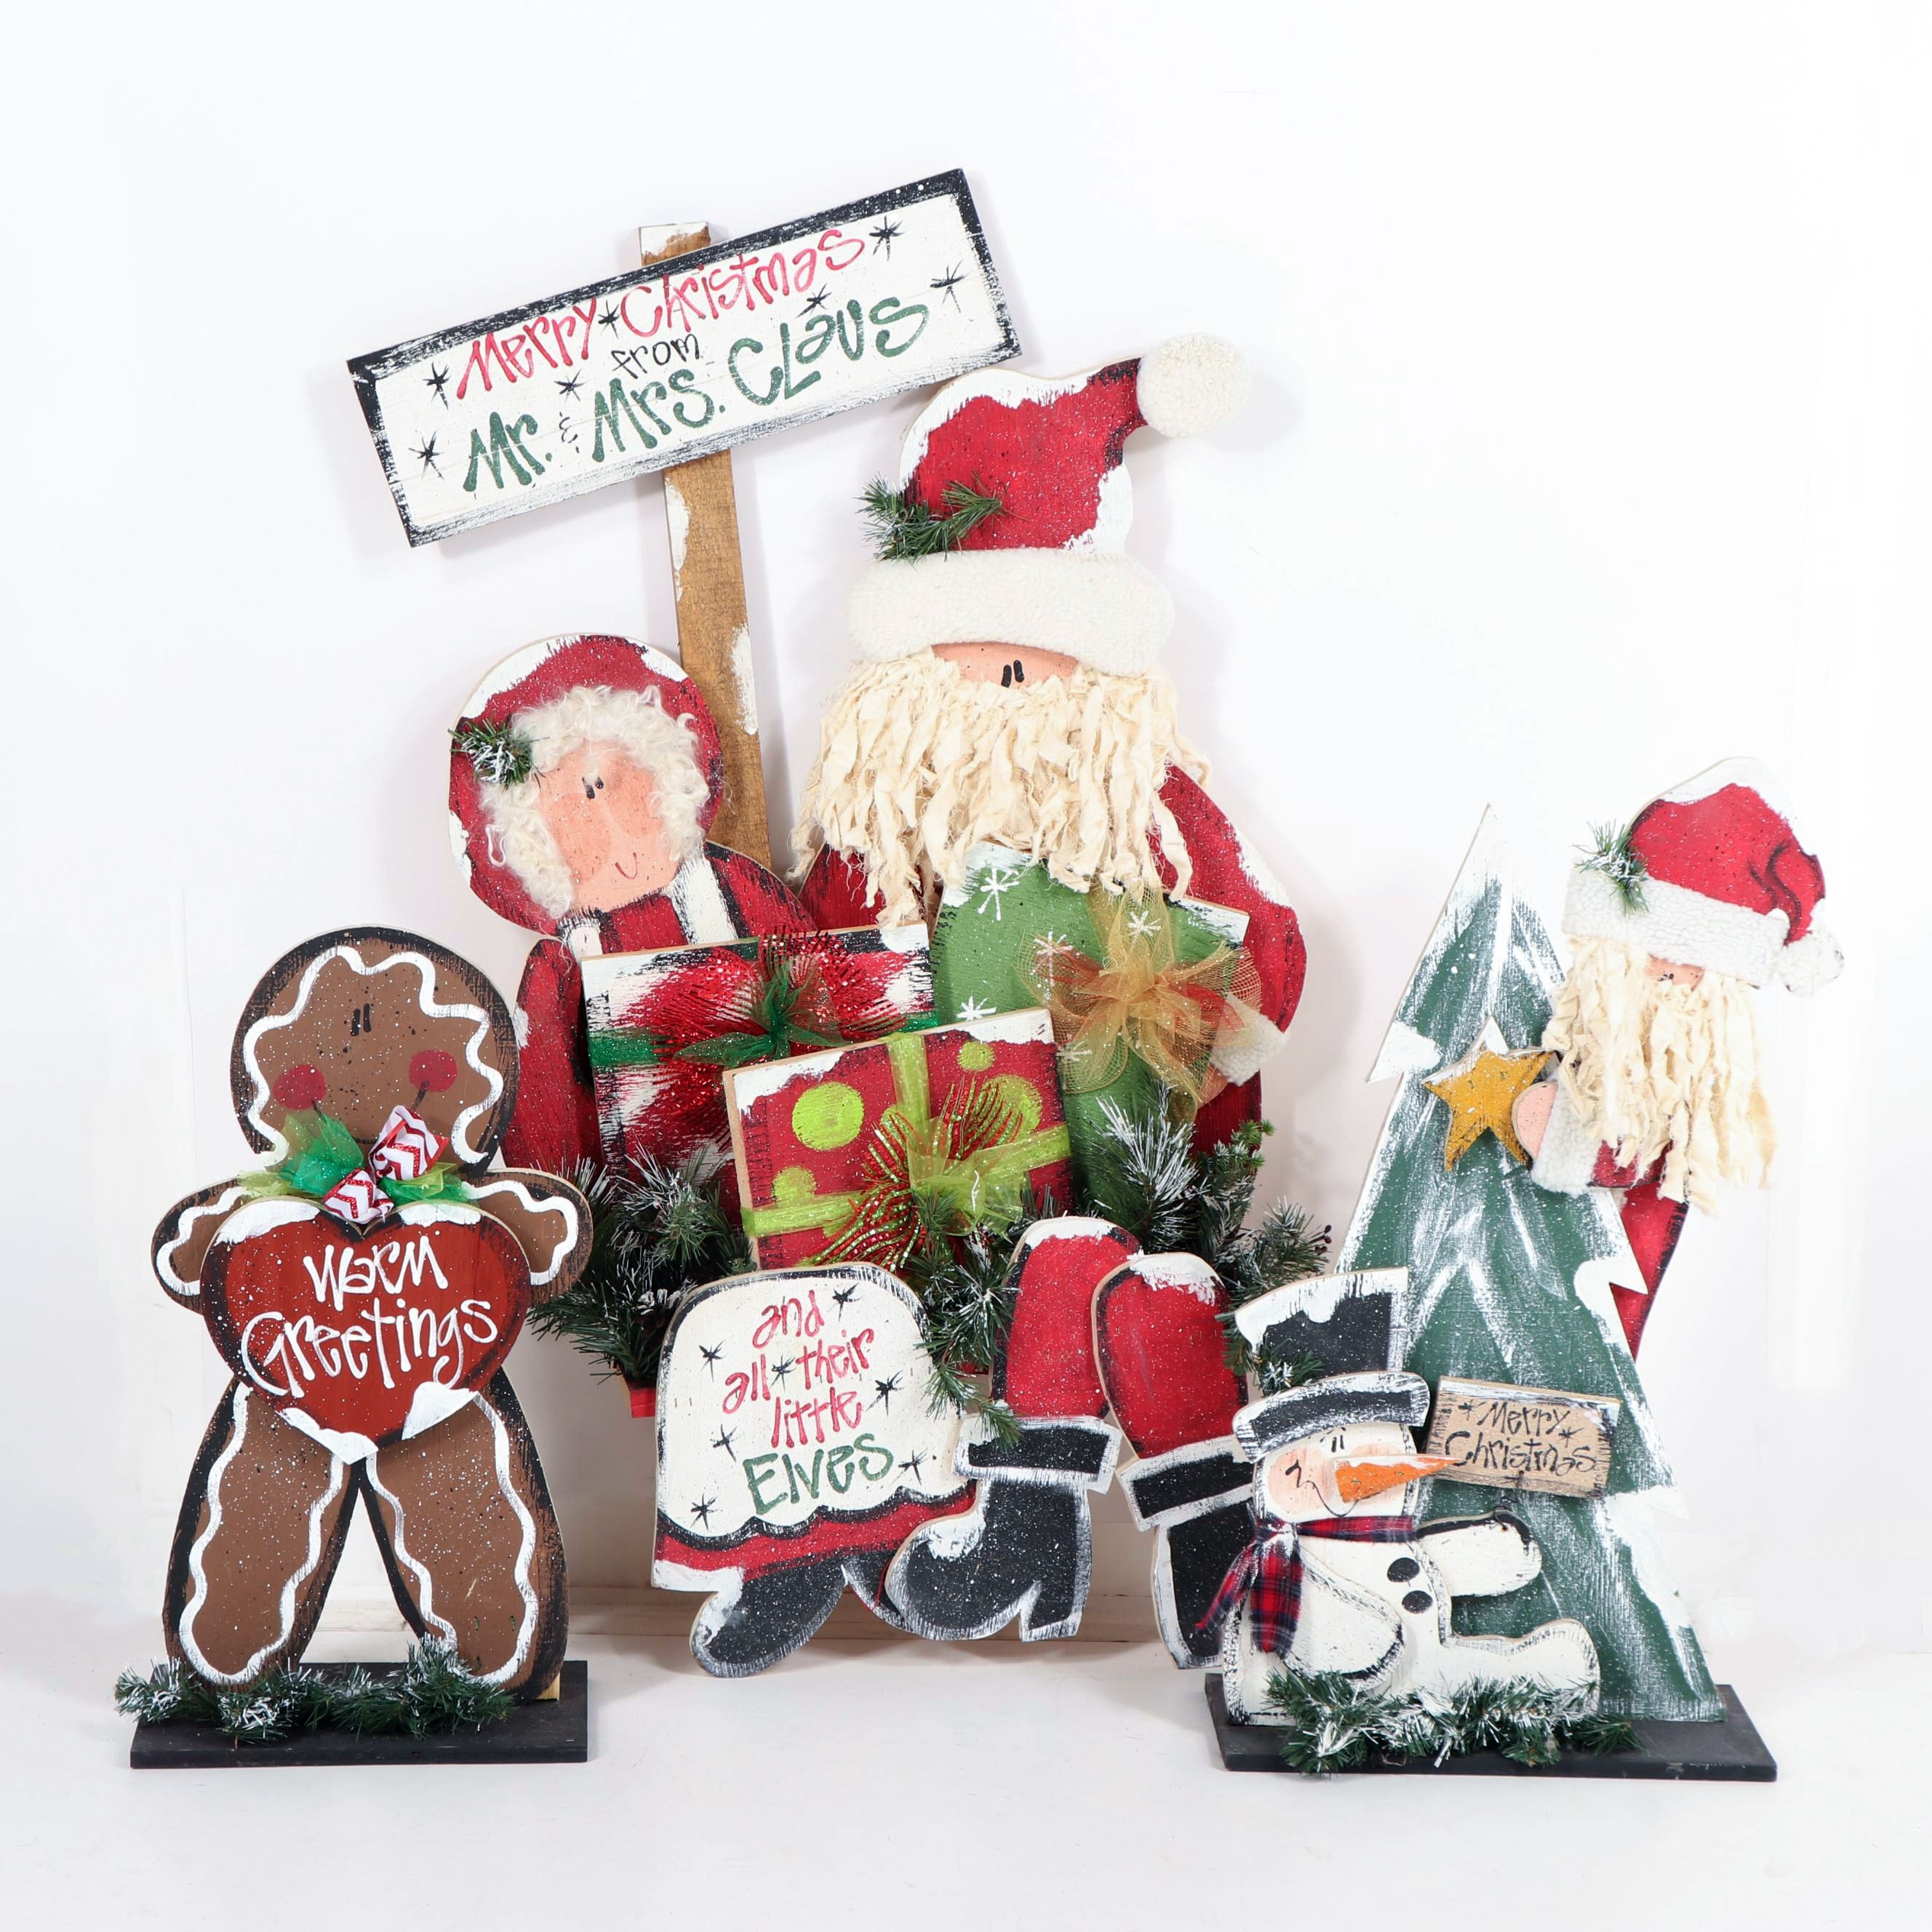 Hand-Painted Decorated Plywood Christmas Decor Featuring Mr. & Mrs. Claus